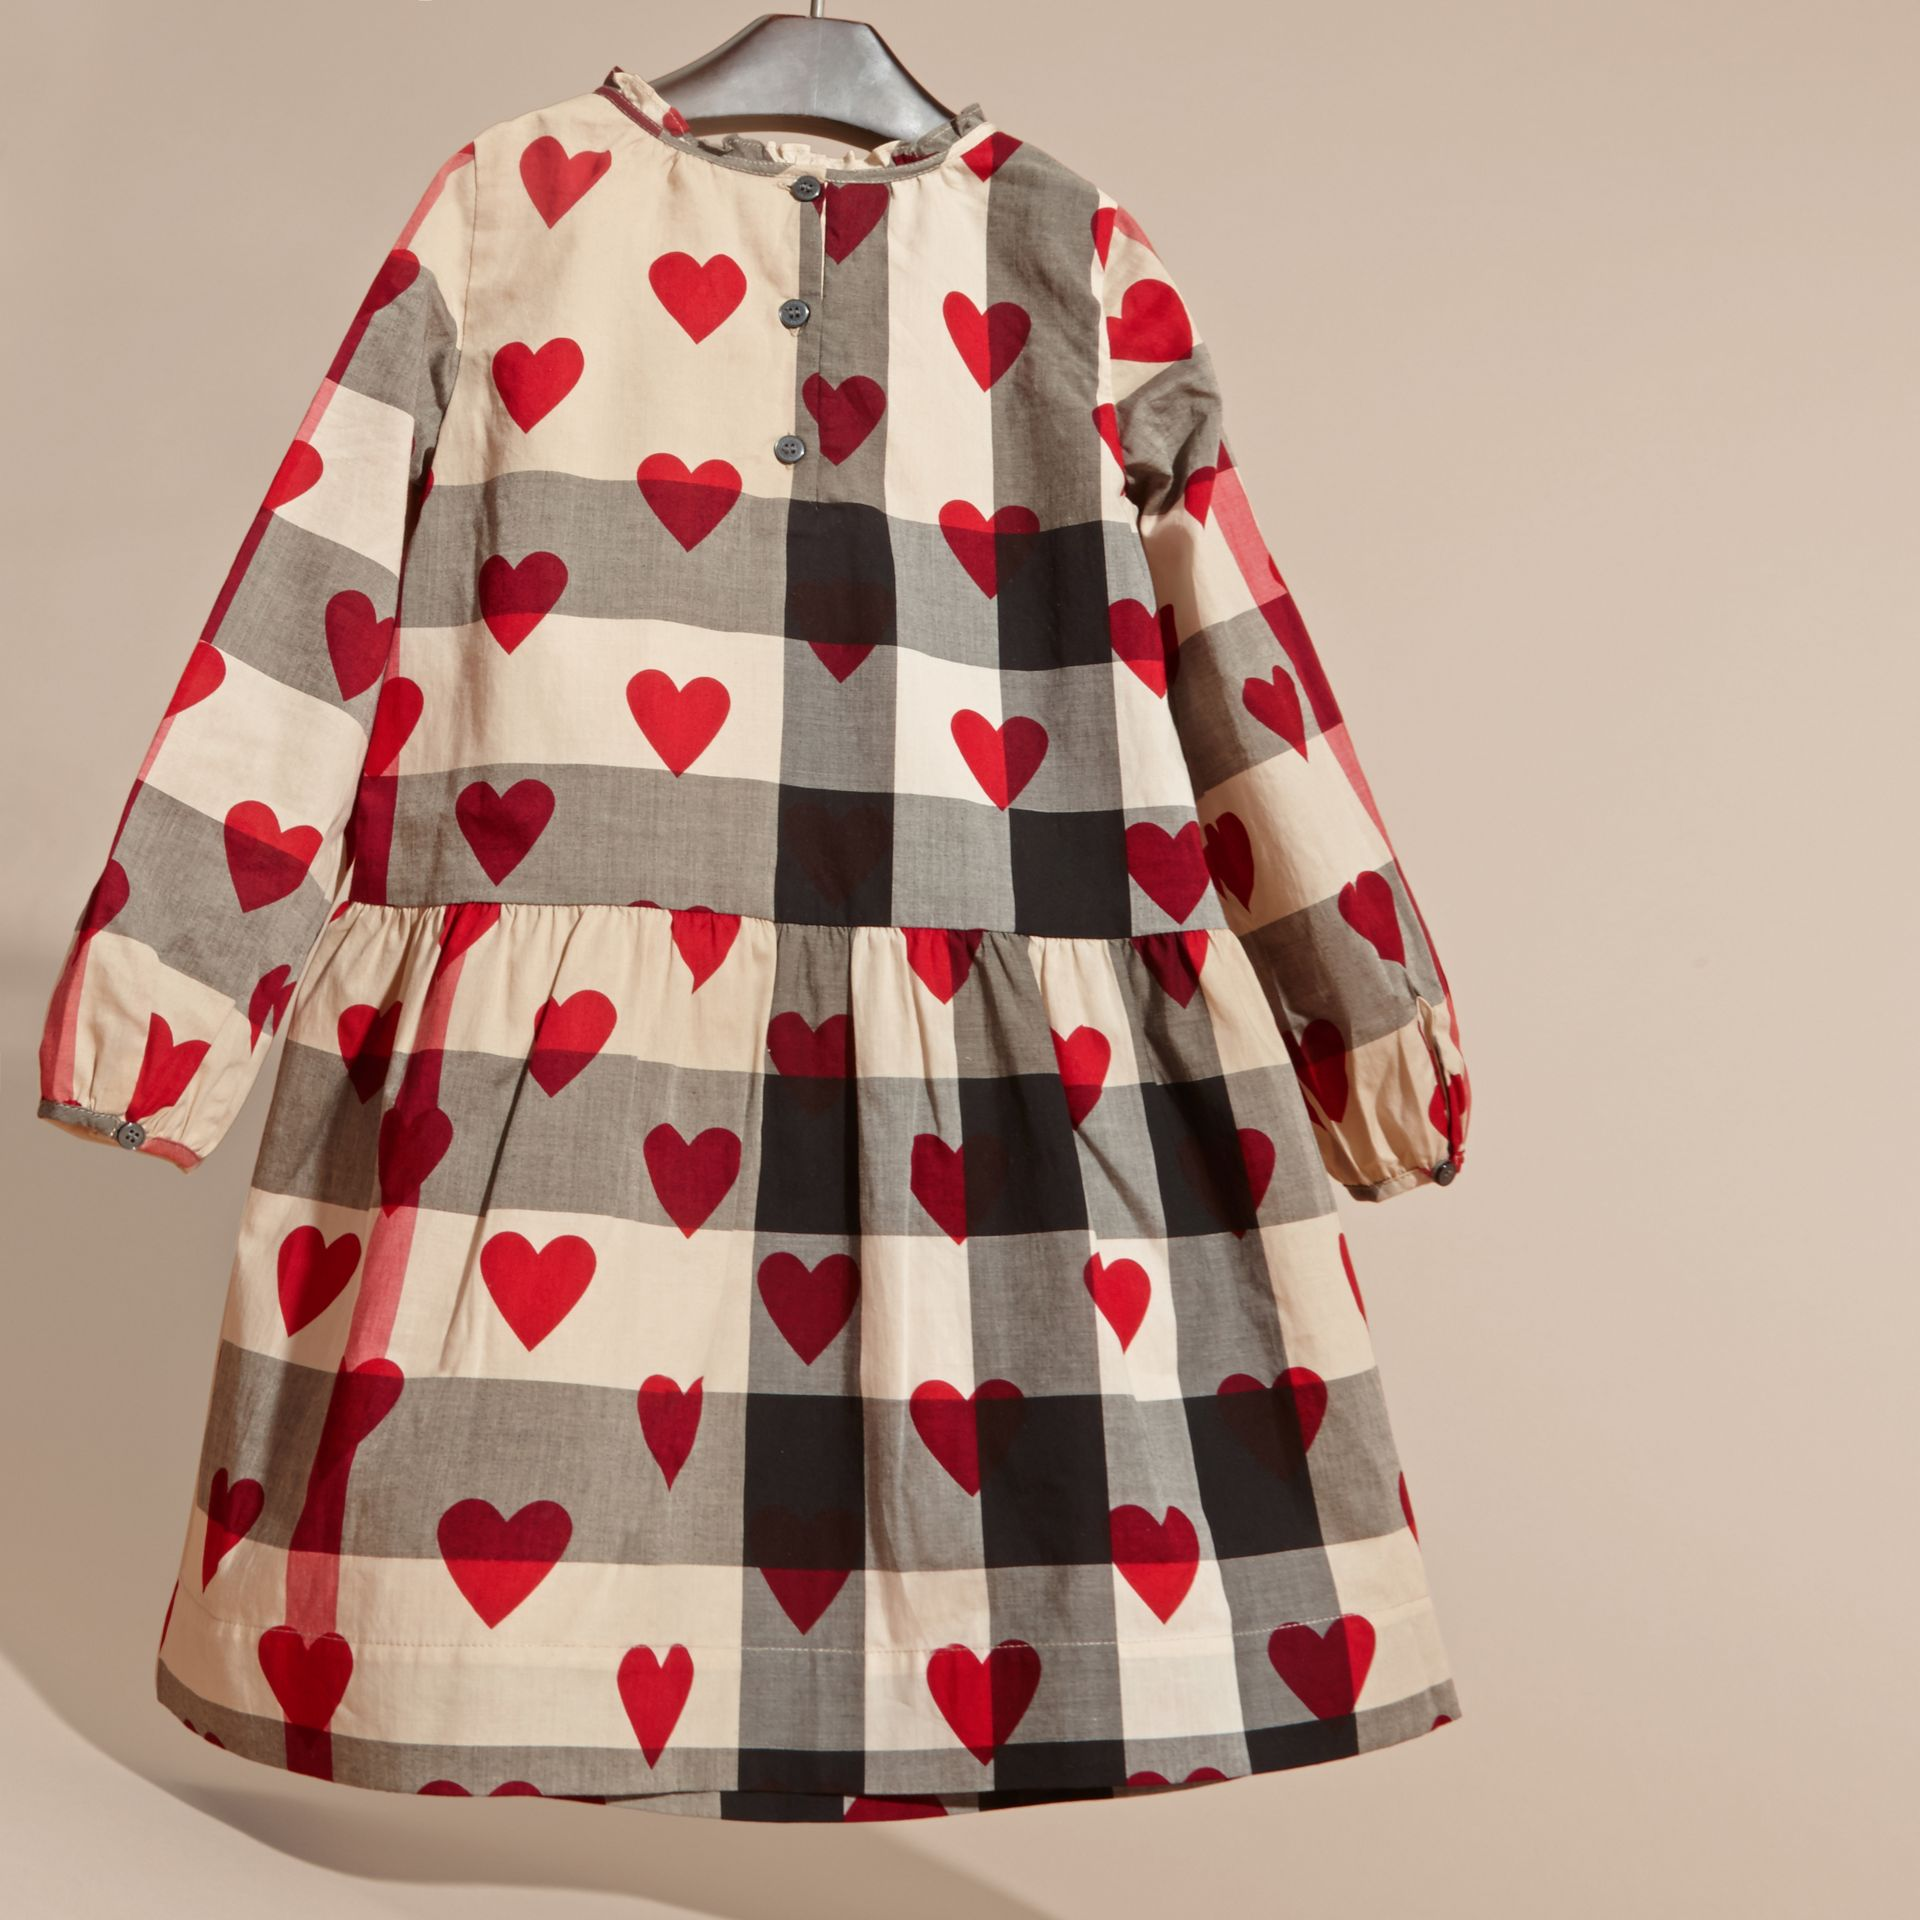 Parade red Check and Heart Print Cotton Tunic Dress - gallery image 4